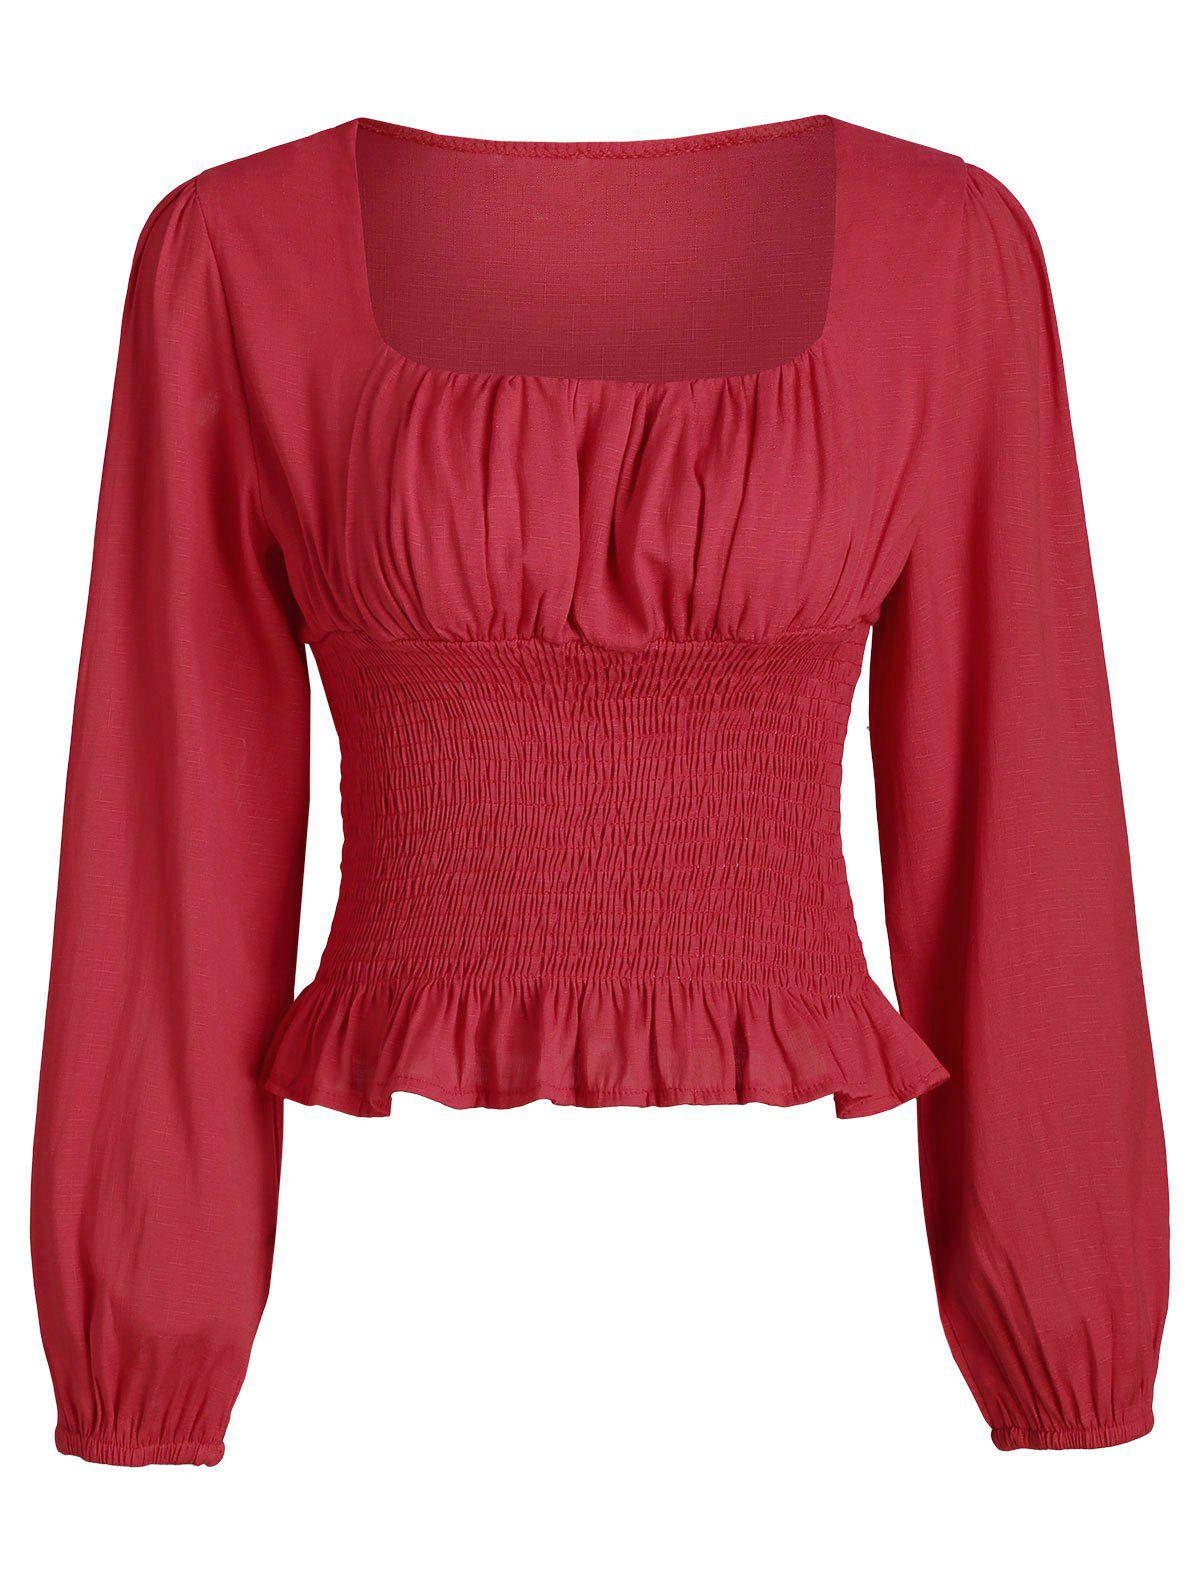 Smocked Ruffles Scoop Neck Solid Top - RED S